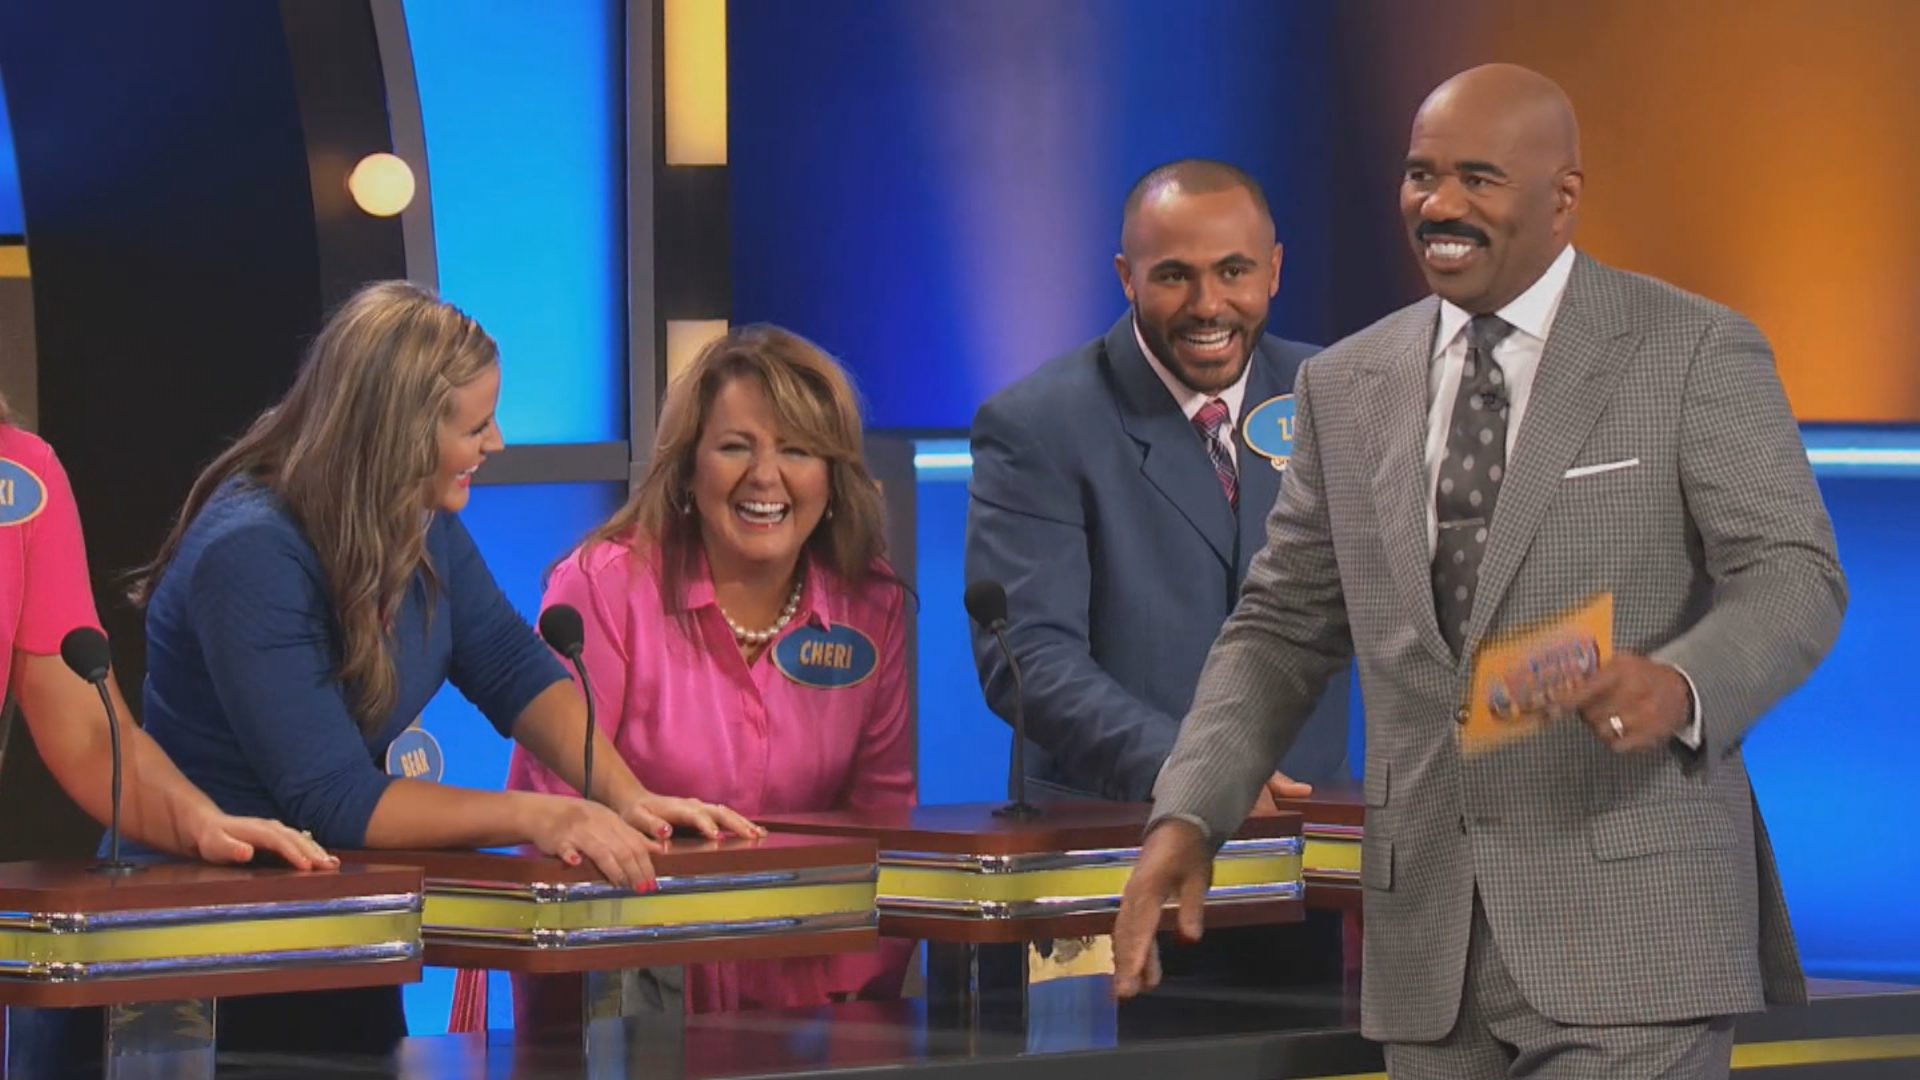 Inside the Story: Utah County family wins big on 'Family Feud' game show